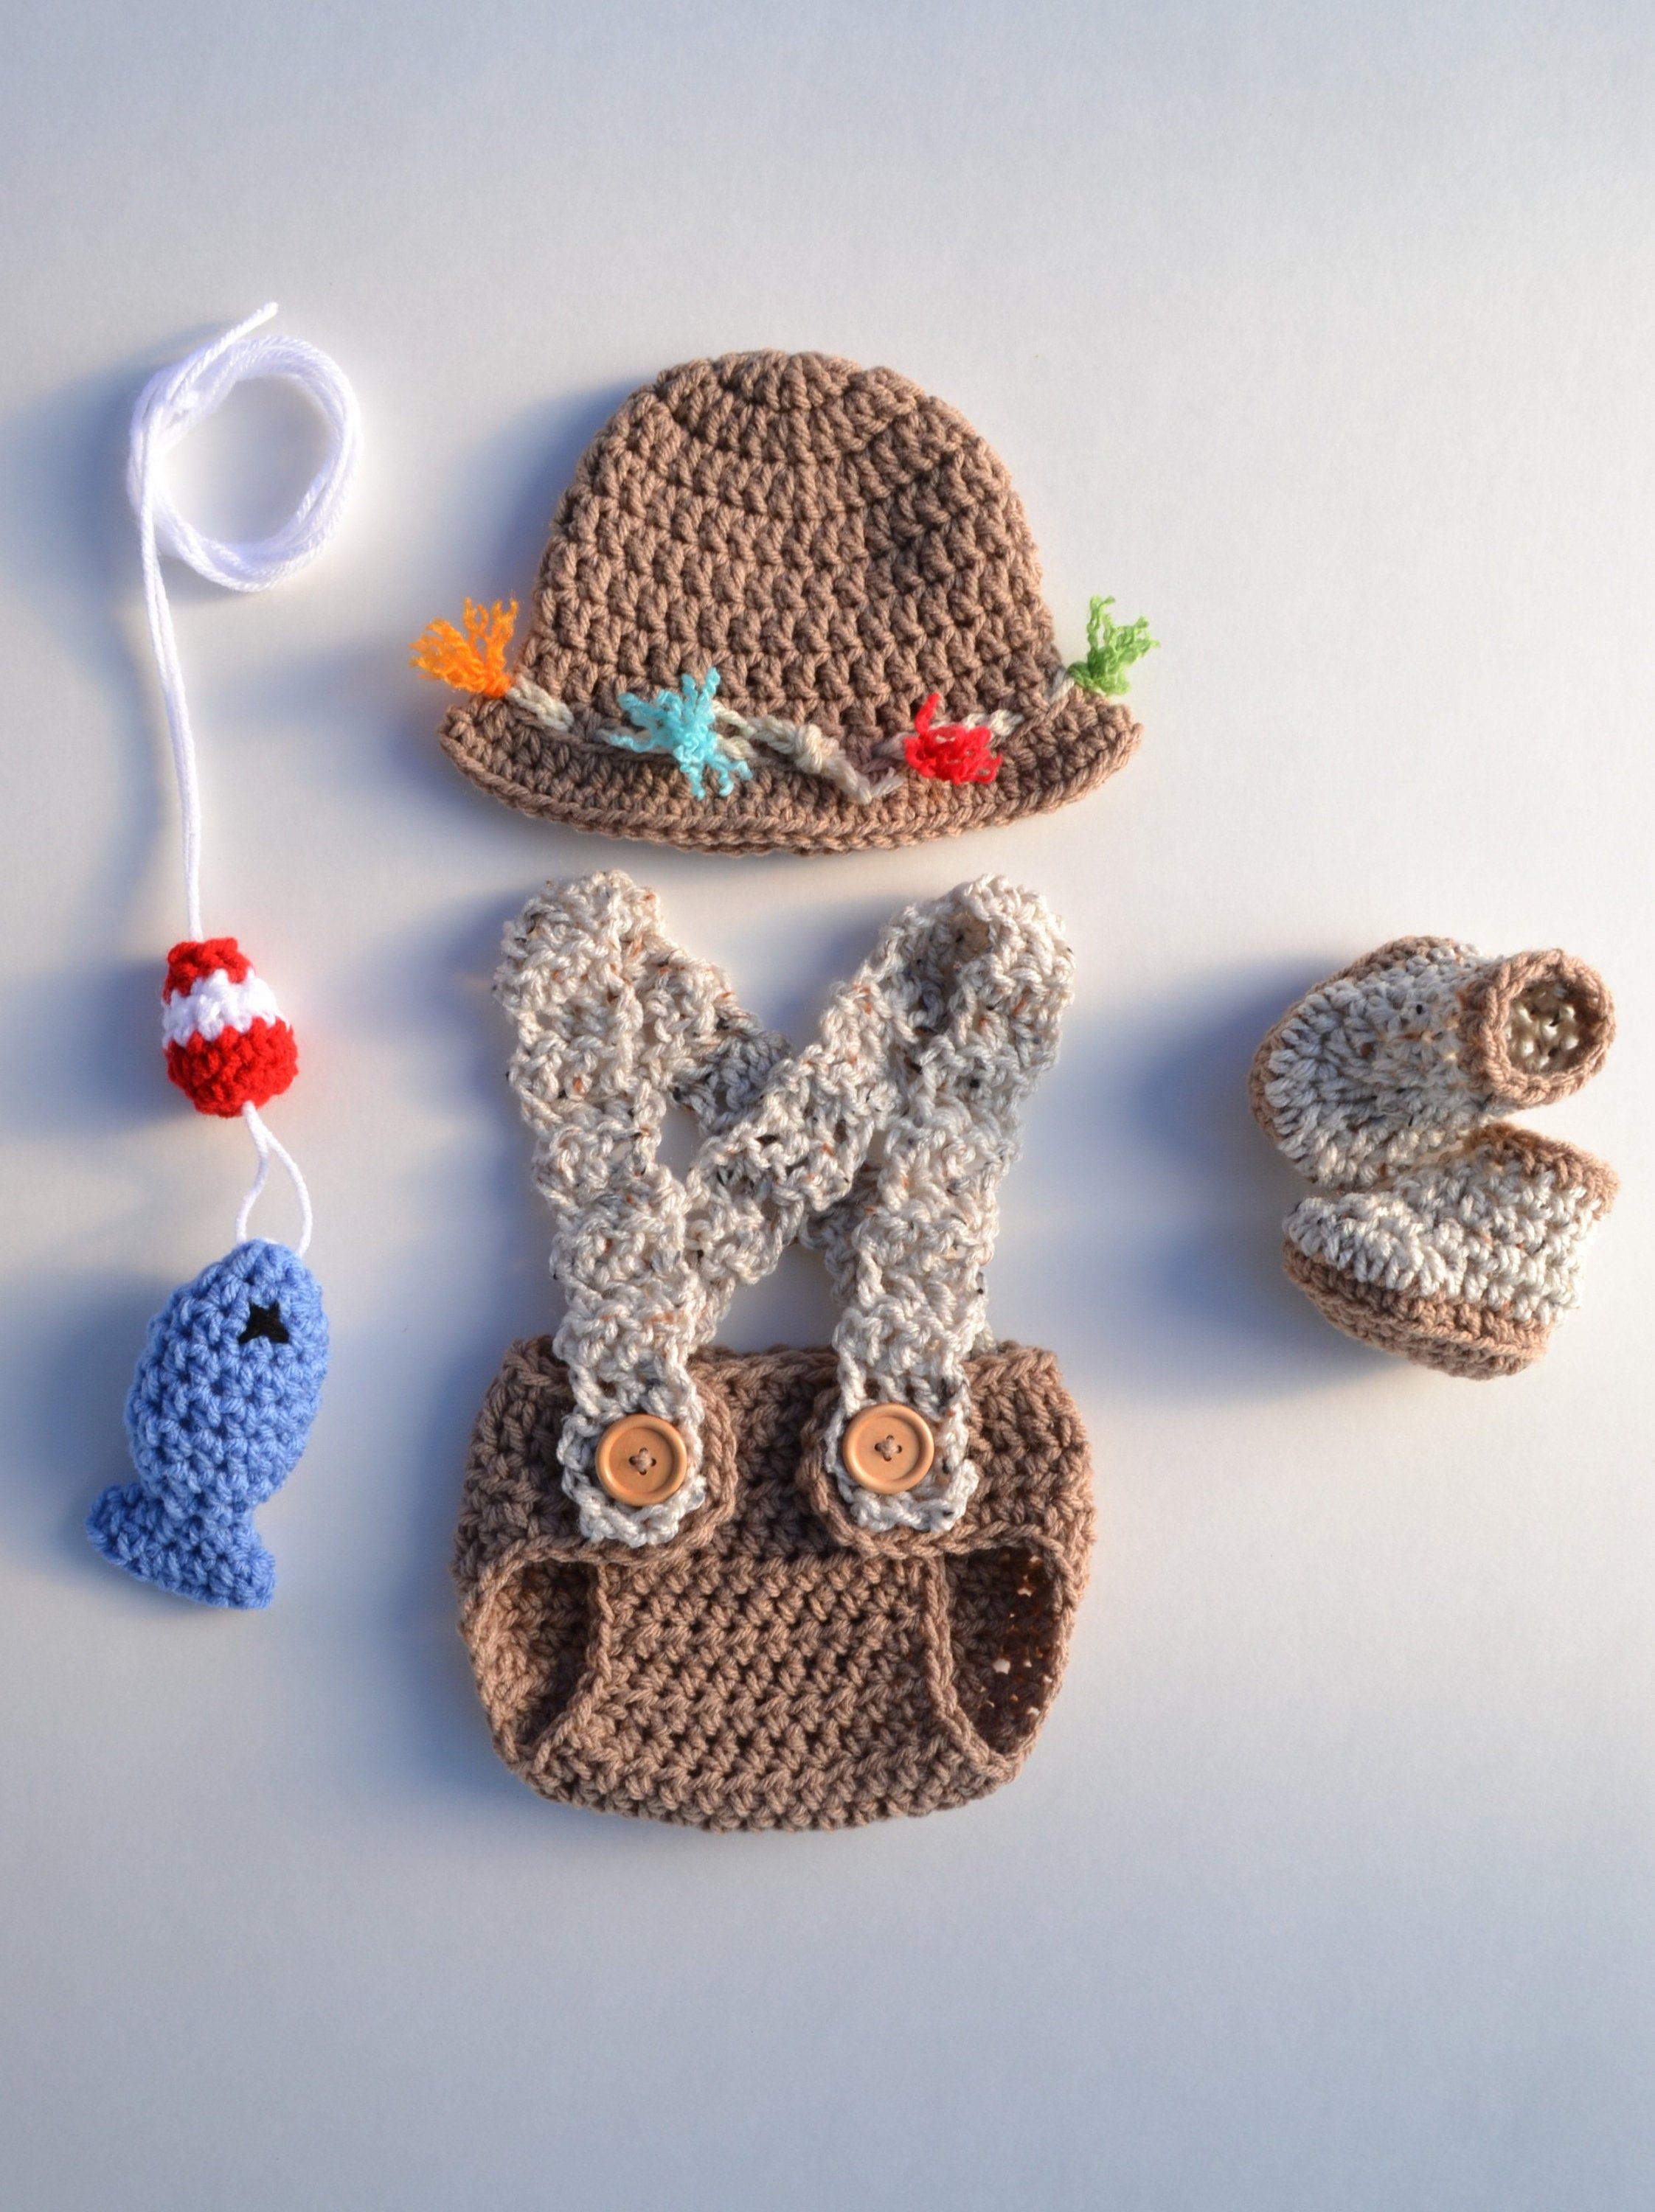 Photo of Crochet Baby Fishing Outfit Fly Fishing Fishing Hat Newborn Boy Outfit Newborn Boy Photography Prop Newborn Boy Outfit Baby Boy Fishing